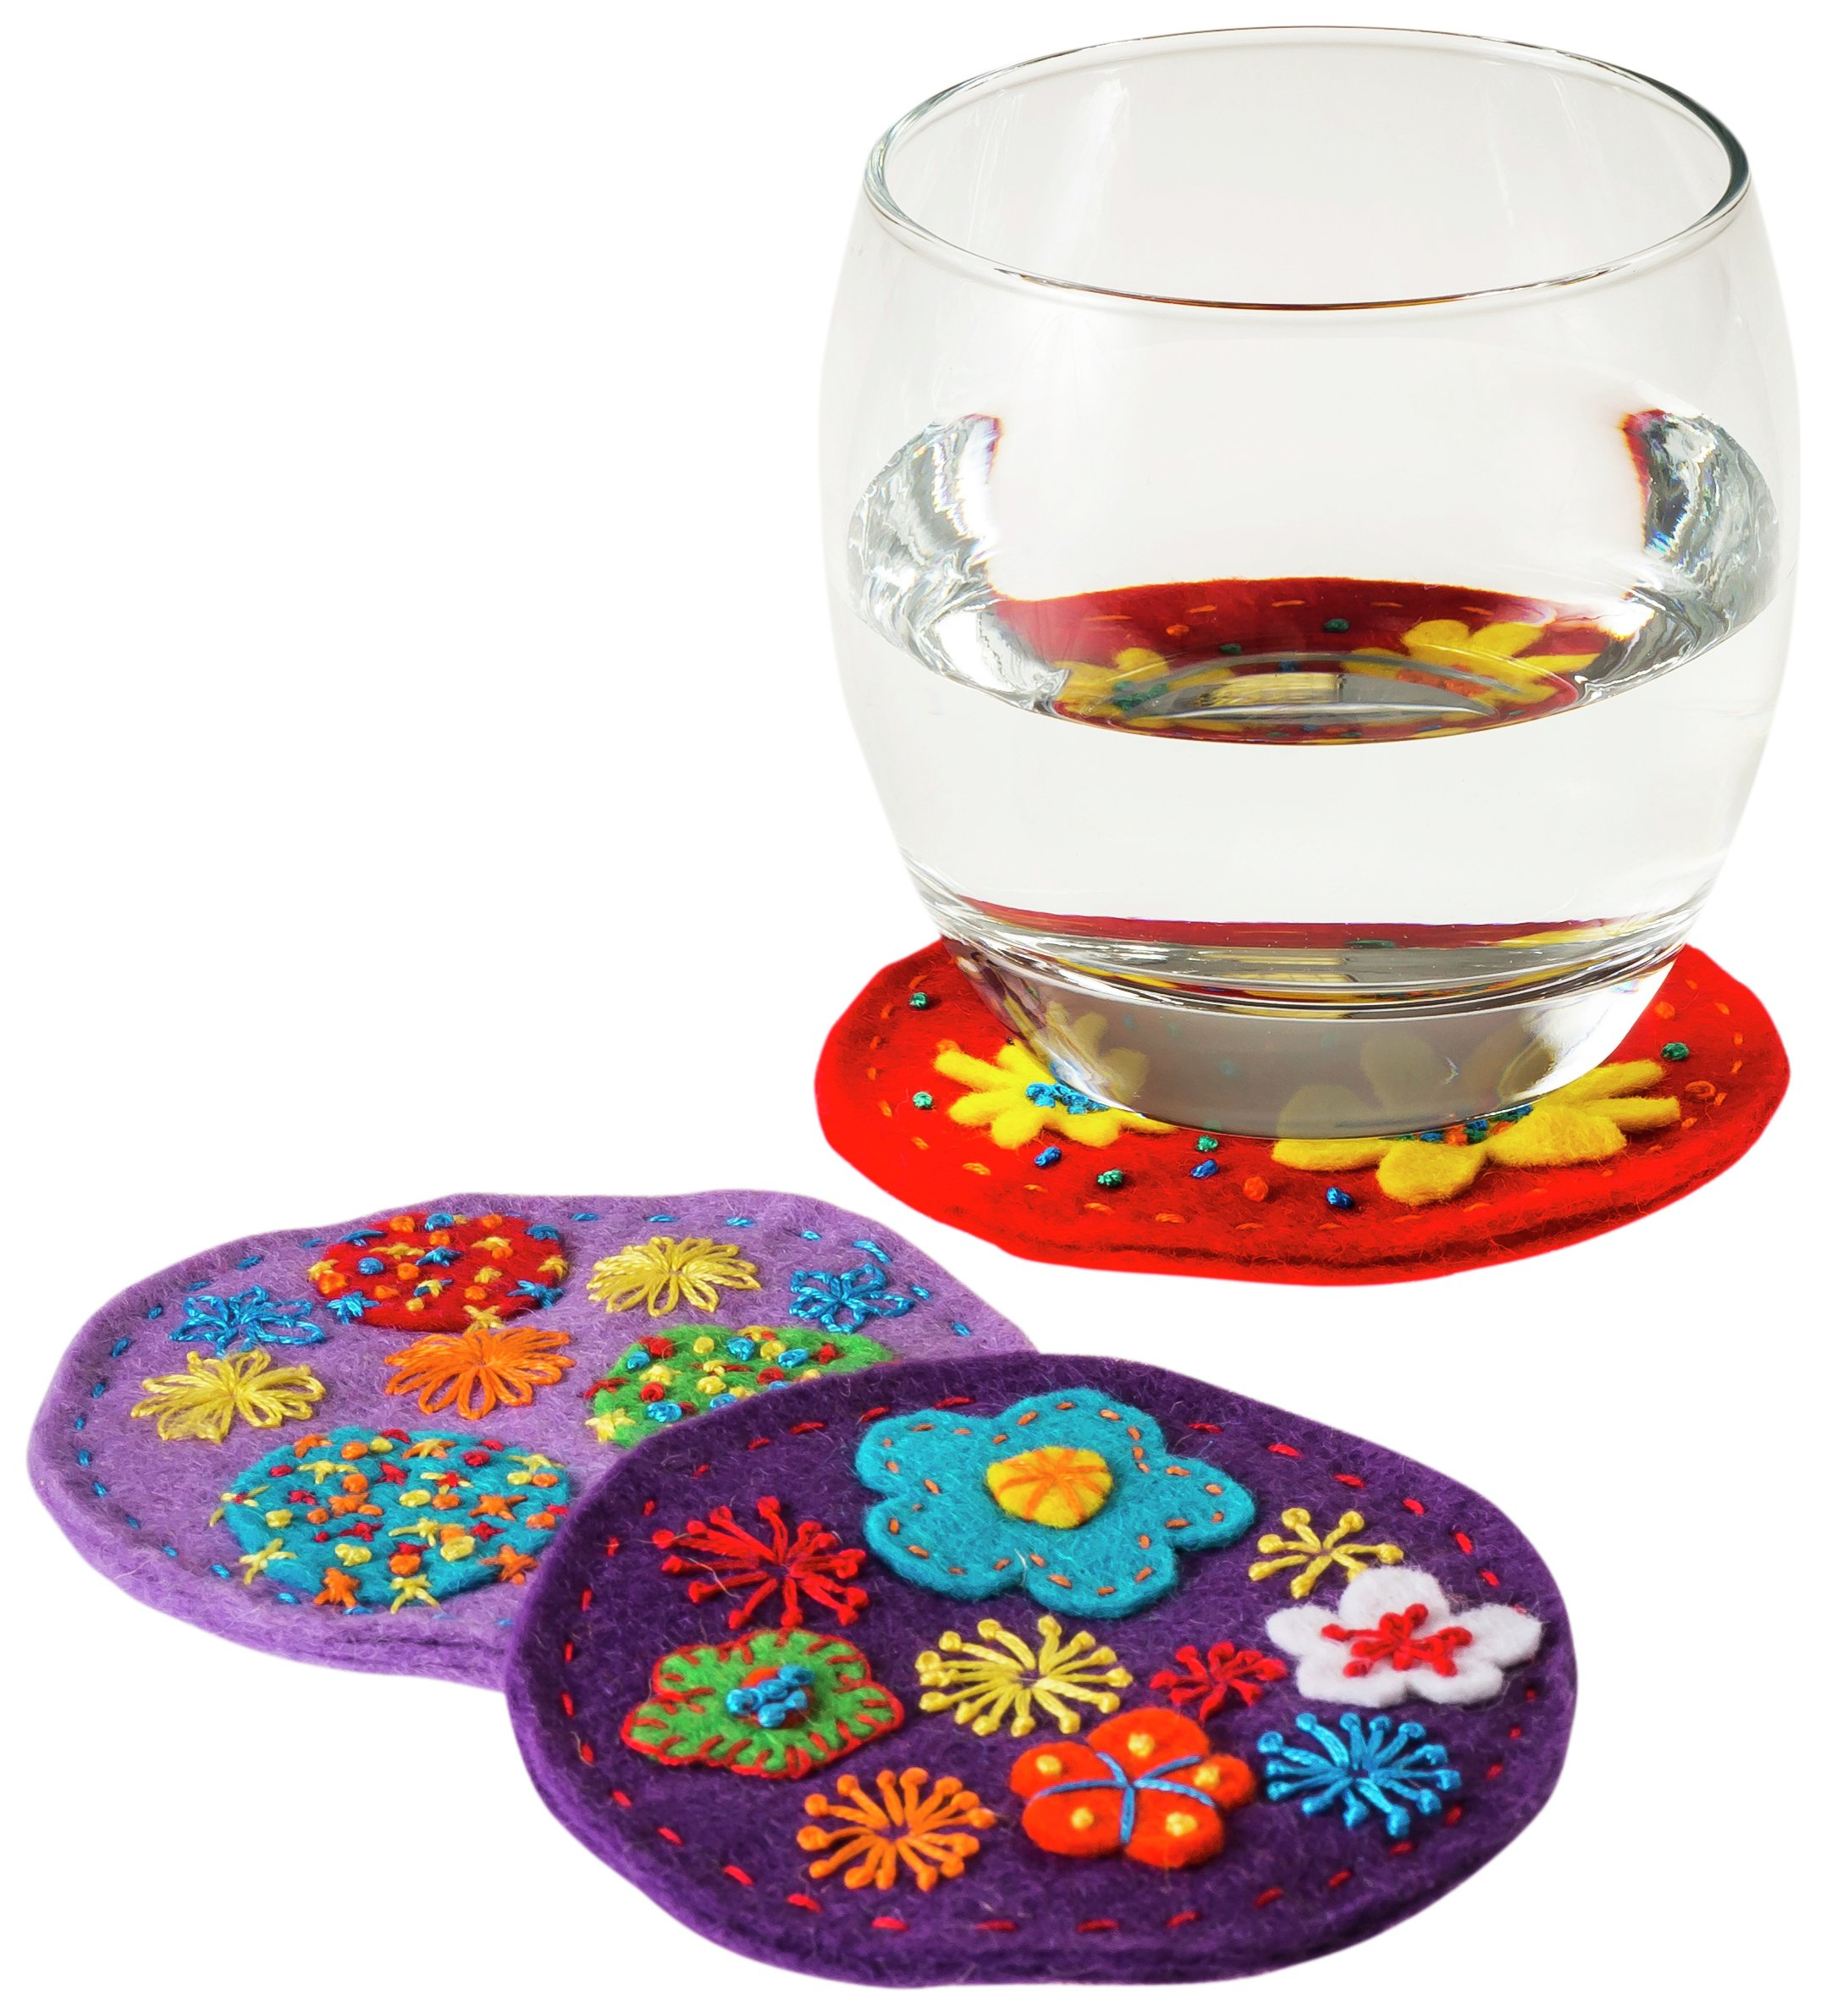 DIY Creative Projects - Felt Coasters lowest price